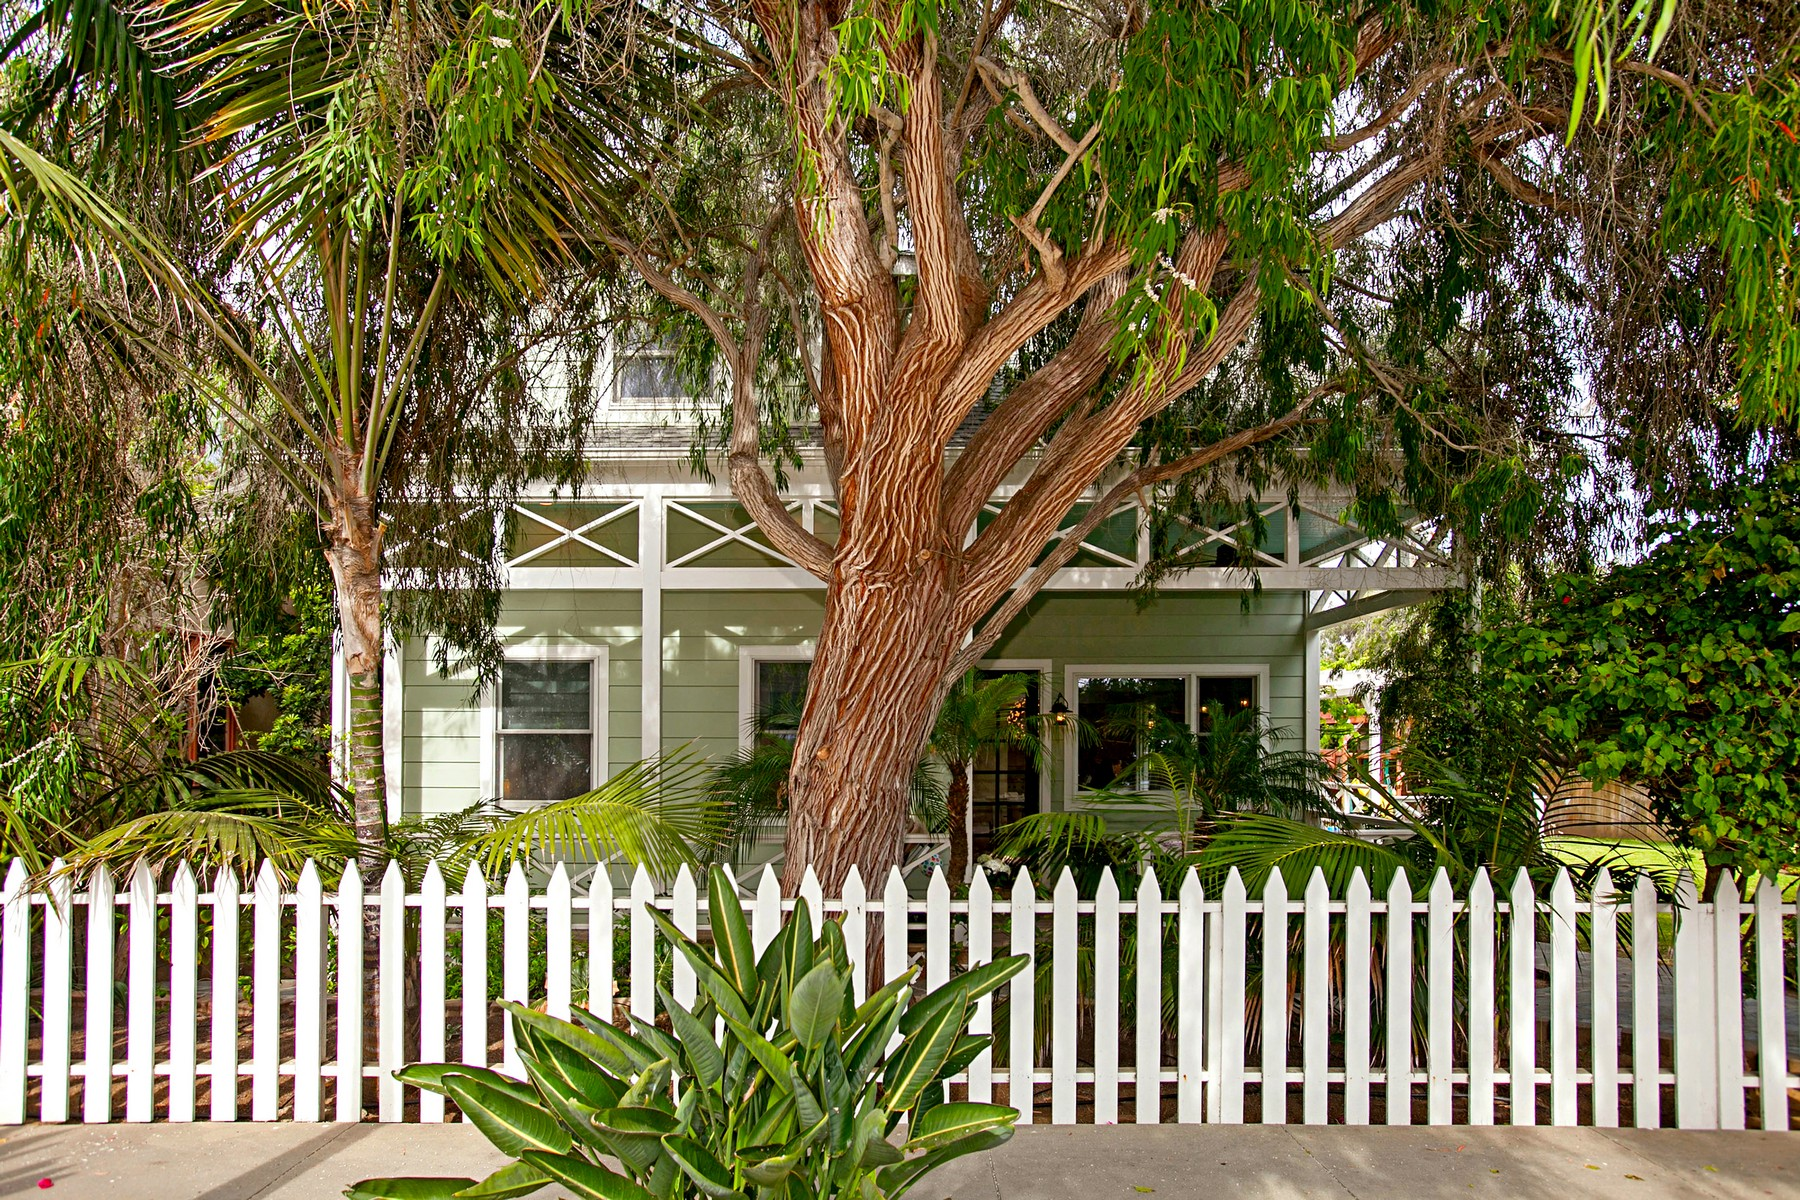 Single Family Home for Sale at 221 Neptune Avenue Encinitas, California, 92024 United States